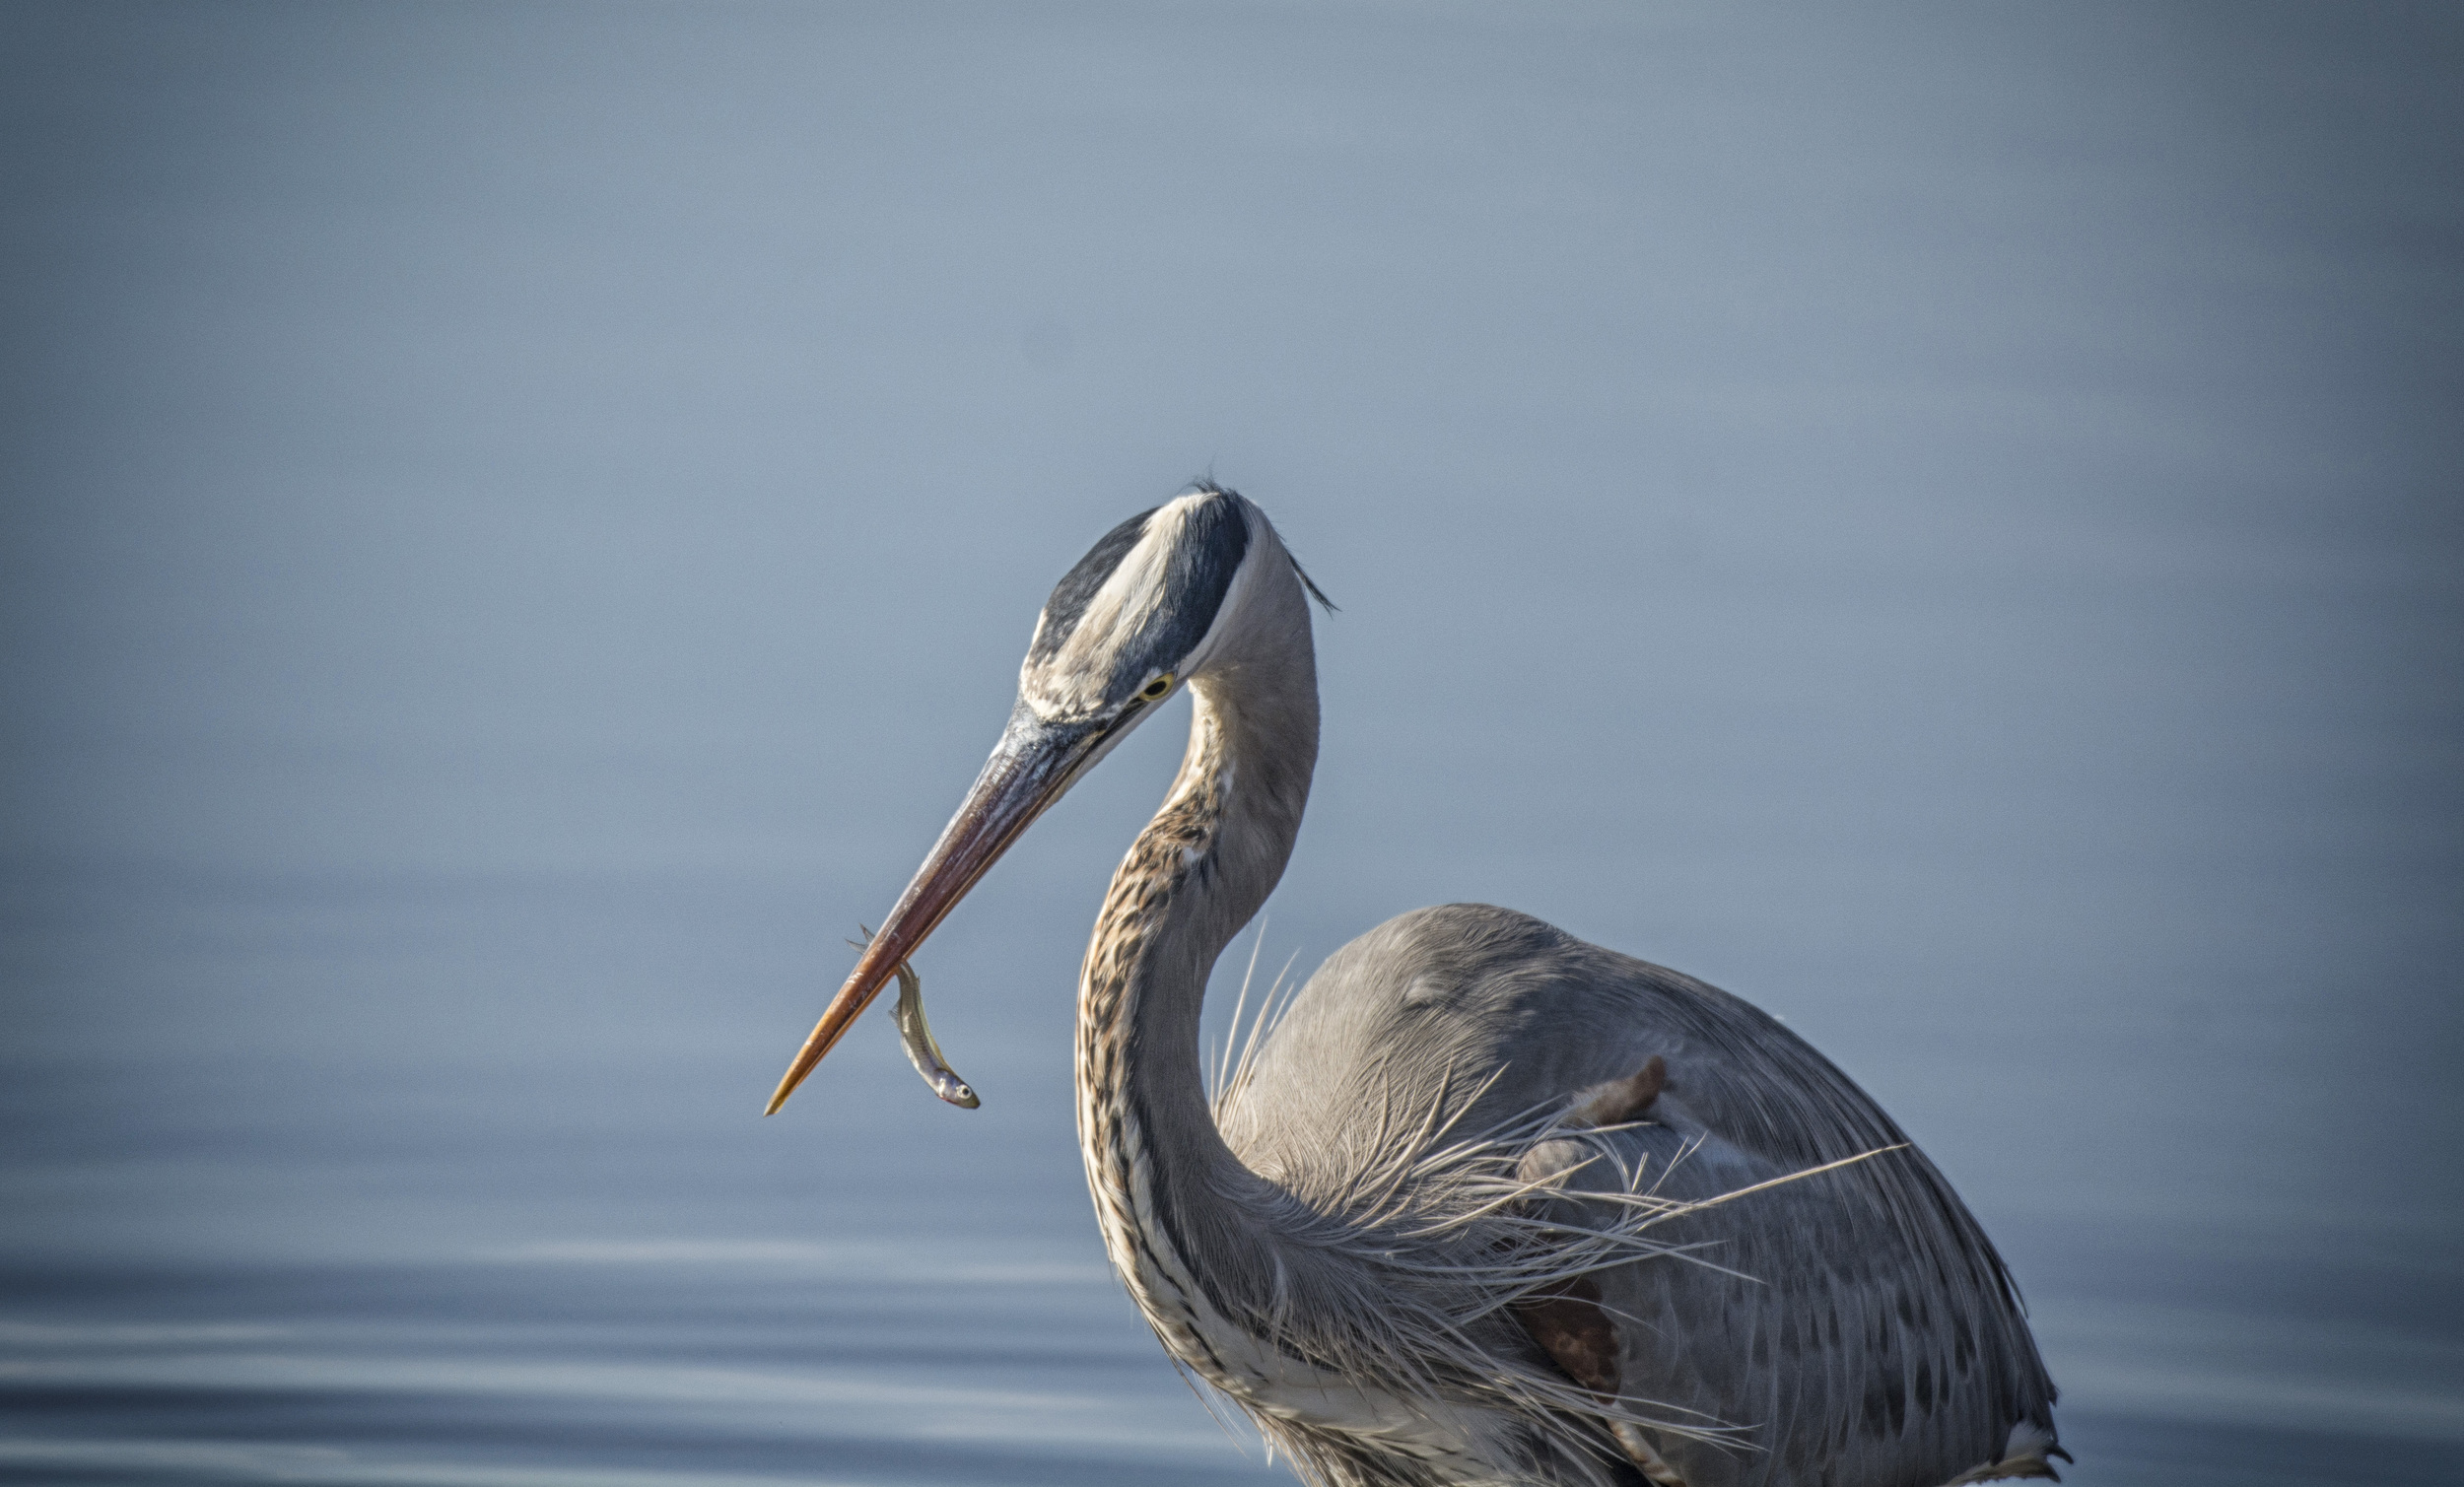 Great Blue Heron feeding